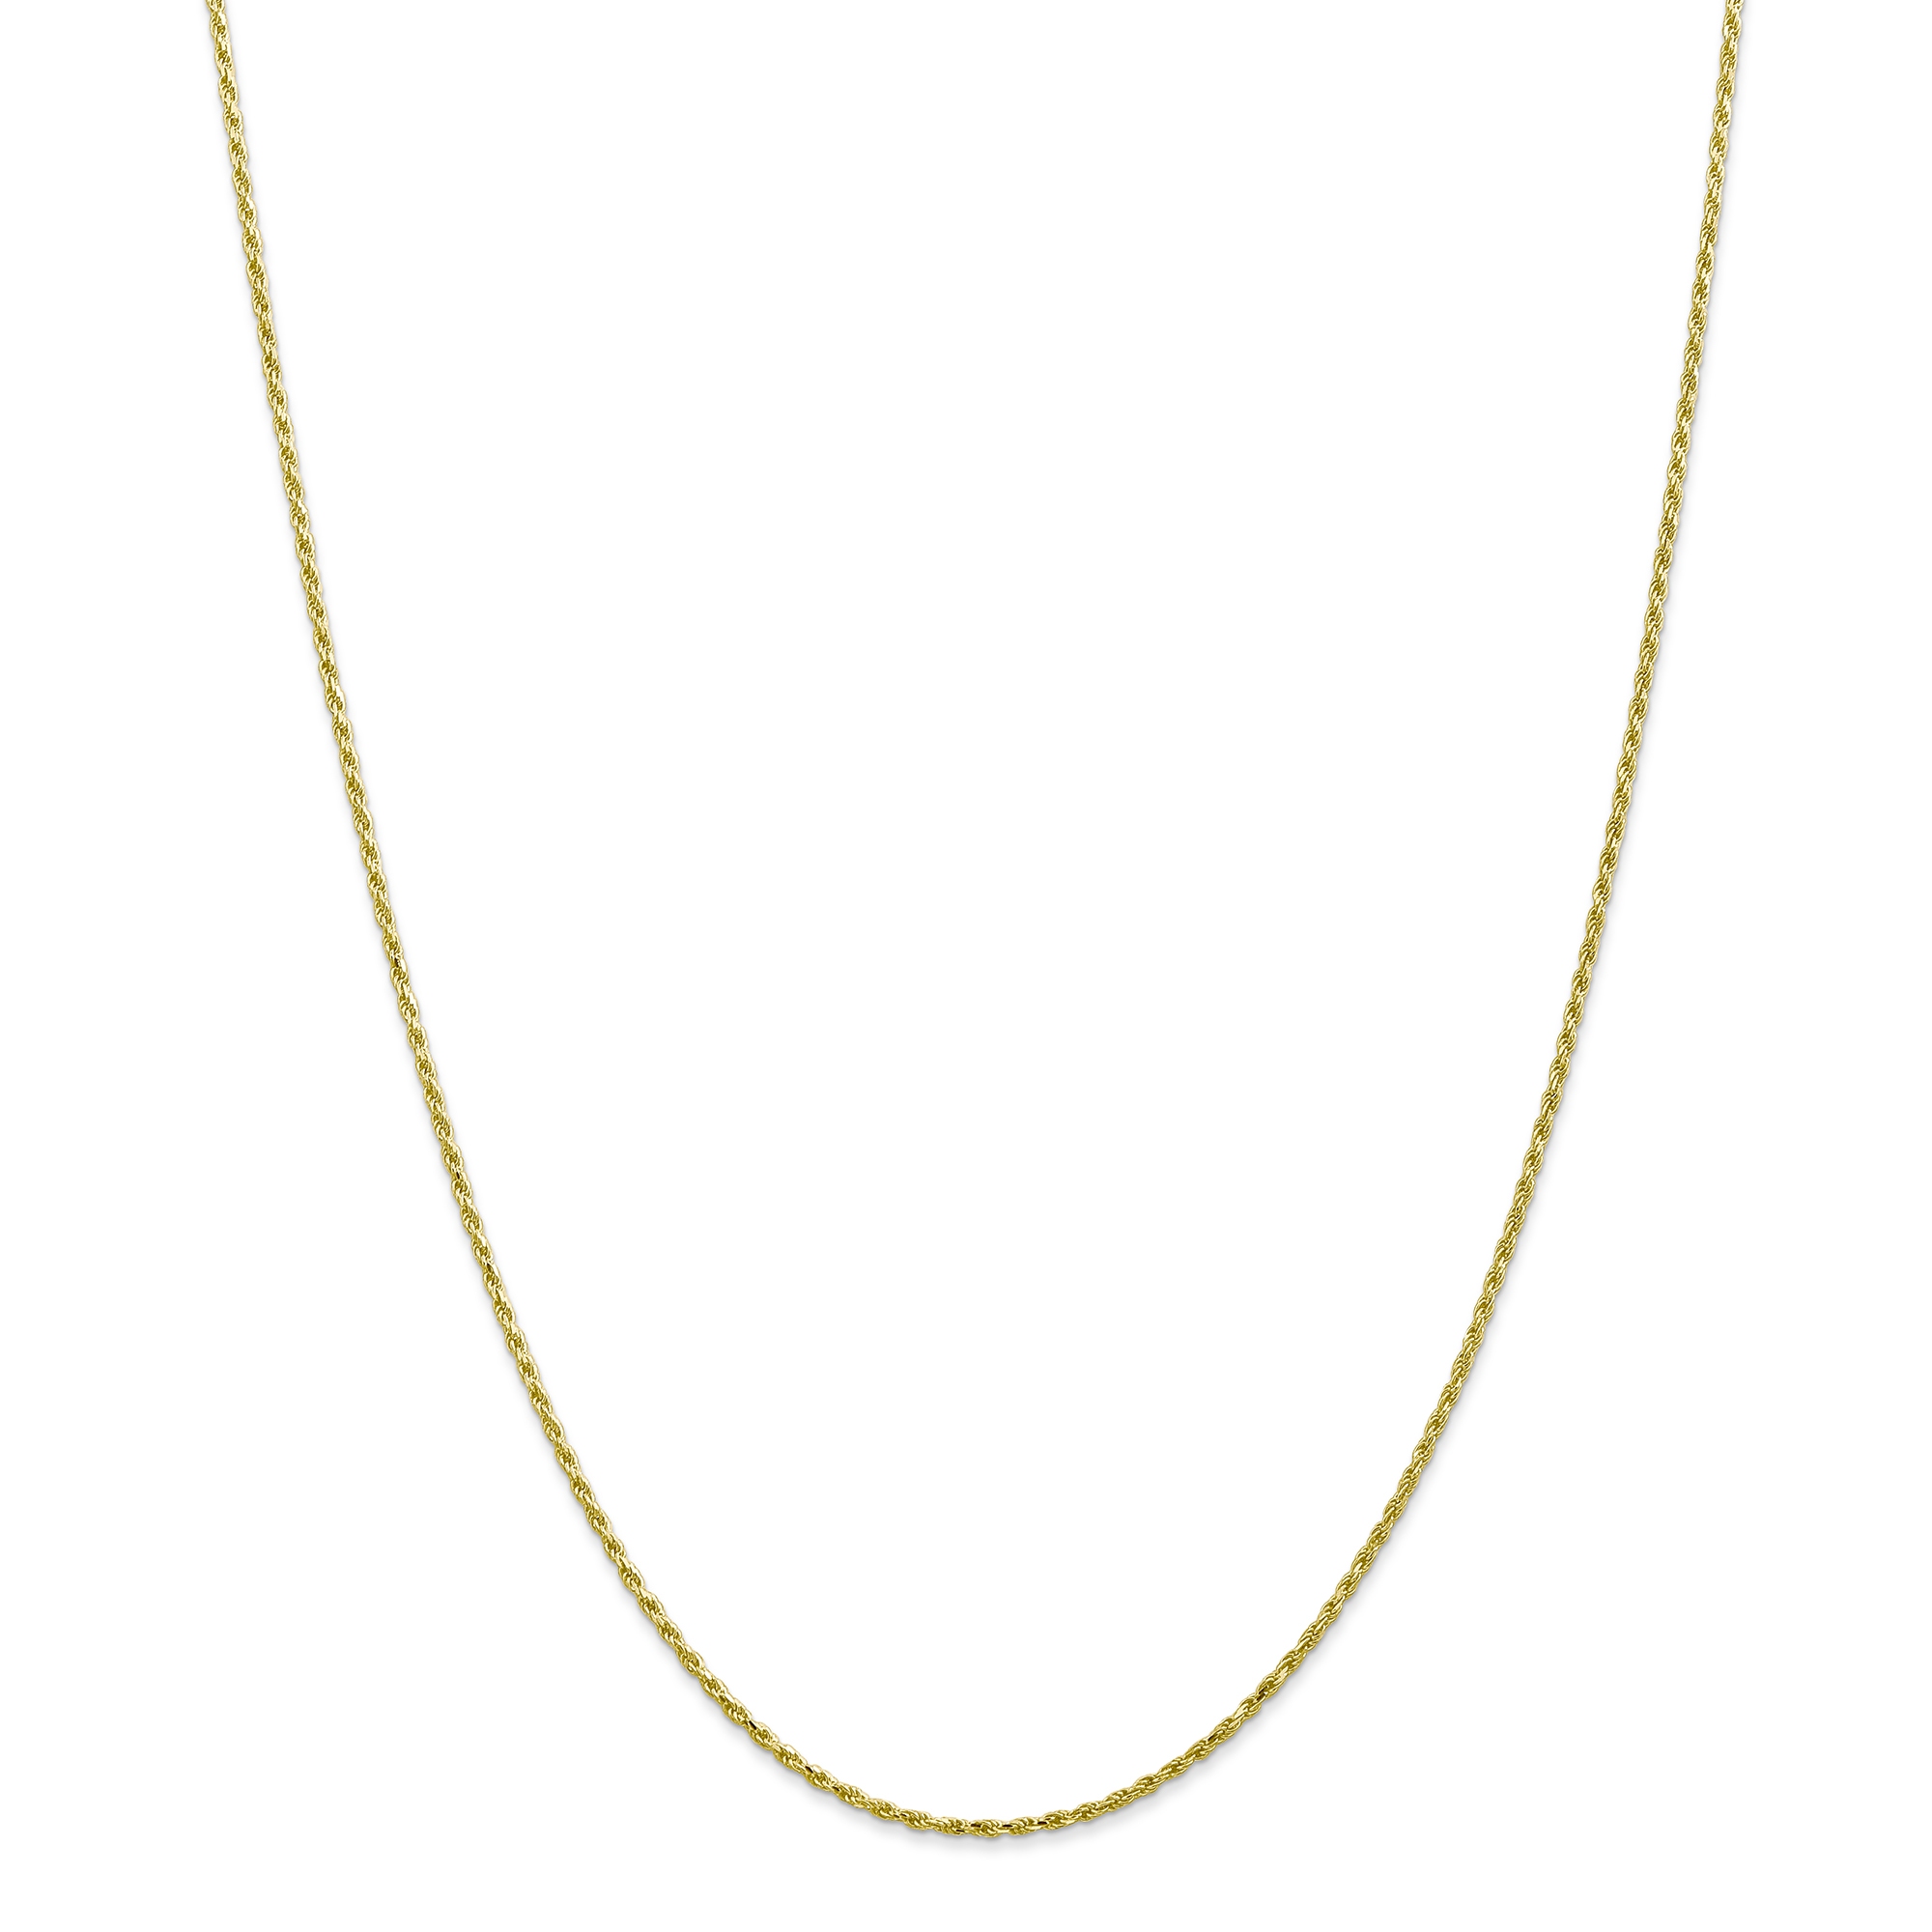 Roy Rose Jewelry 10K Yellow Gold 1.5mm Machine Made Diamond Cut Rope Chain Necklace ~ Length 22'' inches by Roy Rose Jewelry